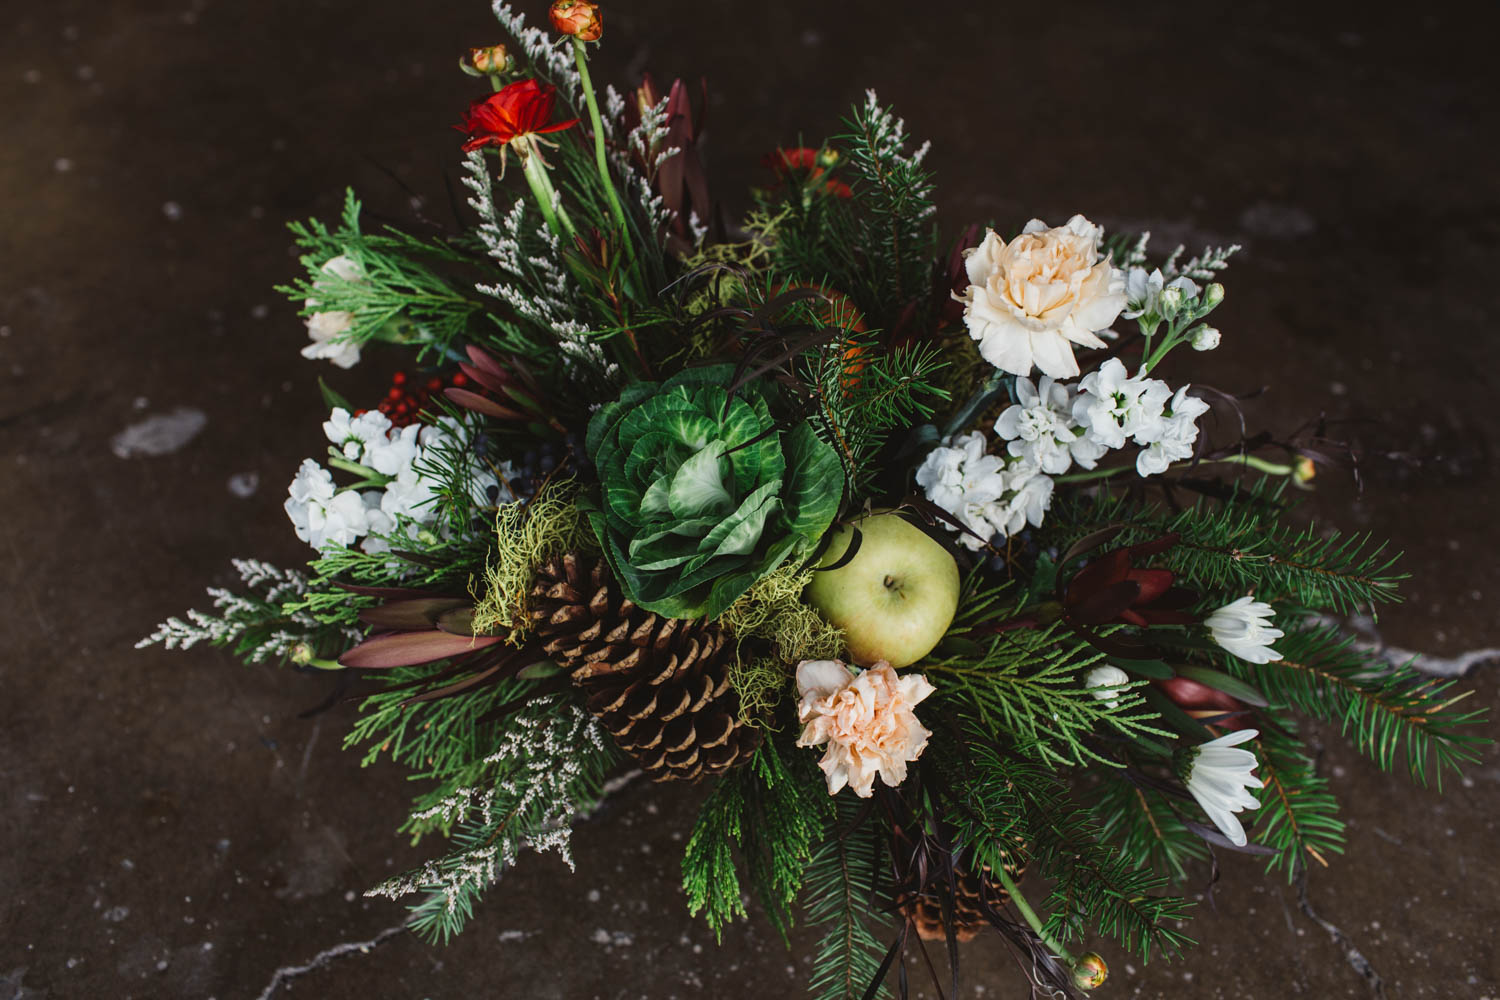 bring some holiday cheer to your Christmas parties with a beautiful Christmas arrangement